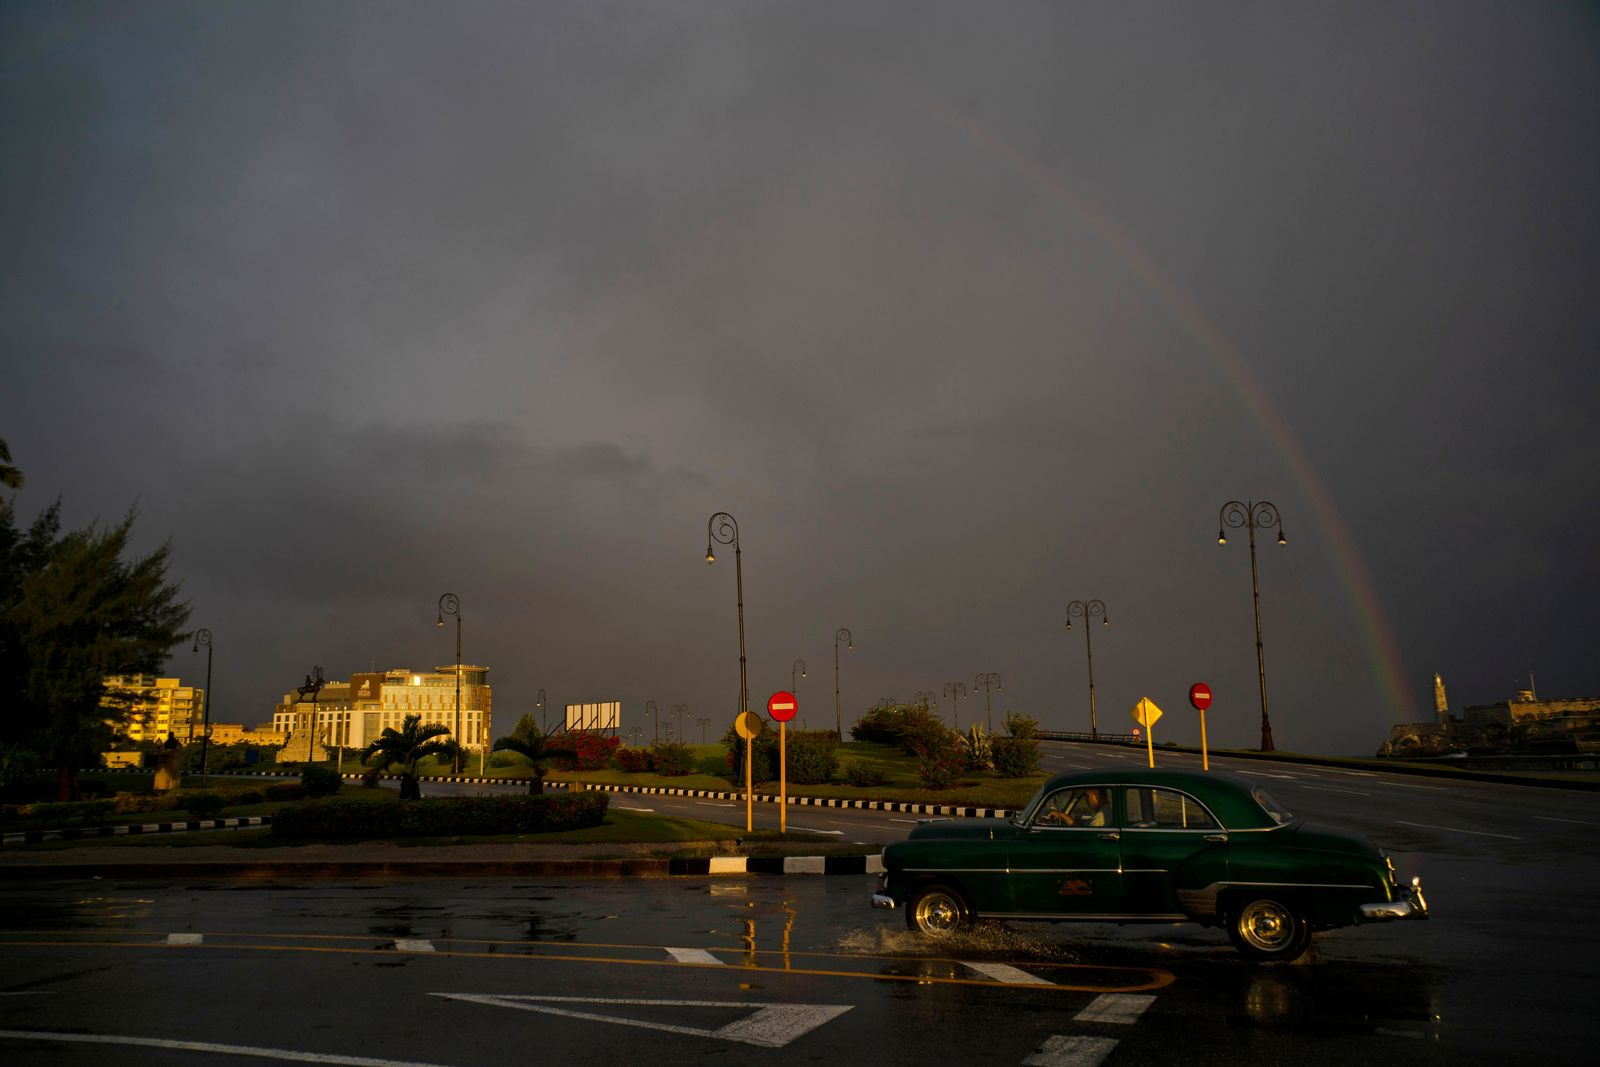 In this Nov. 10, 2019 photo, under a rainbow, a man drives a classic American car past the newly opened Hotel Paseo del Prado in Havana, Cuba. The city will celebrate its 500th anniversary on Nov. 16. (AP Photo/Ramon Espinosa)